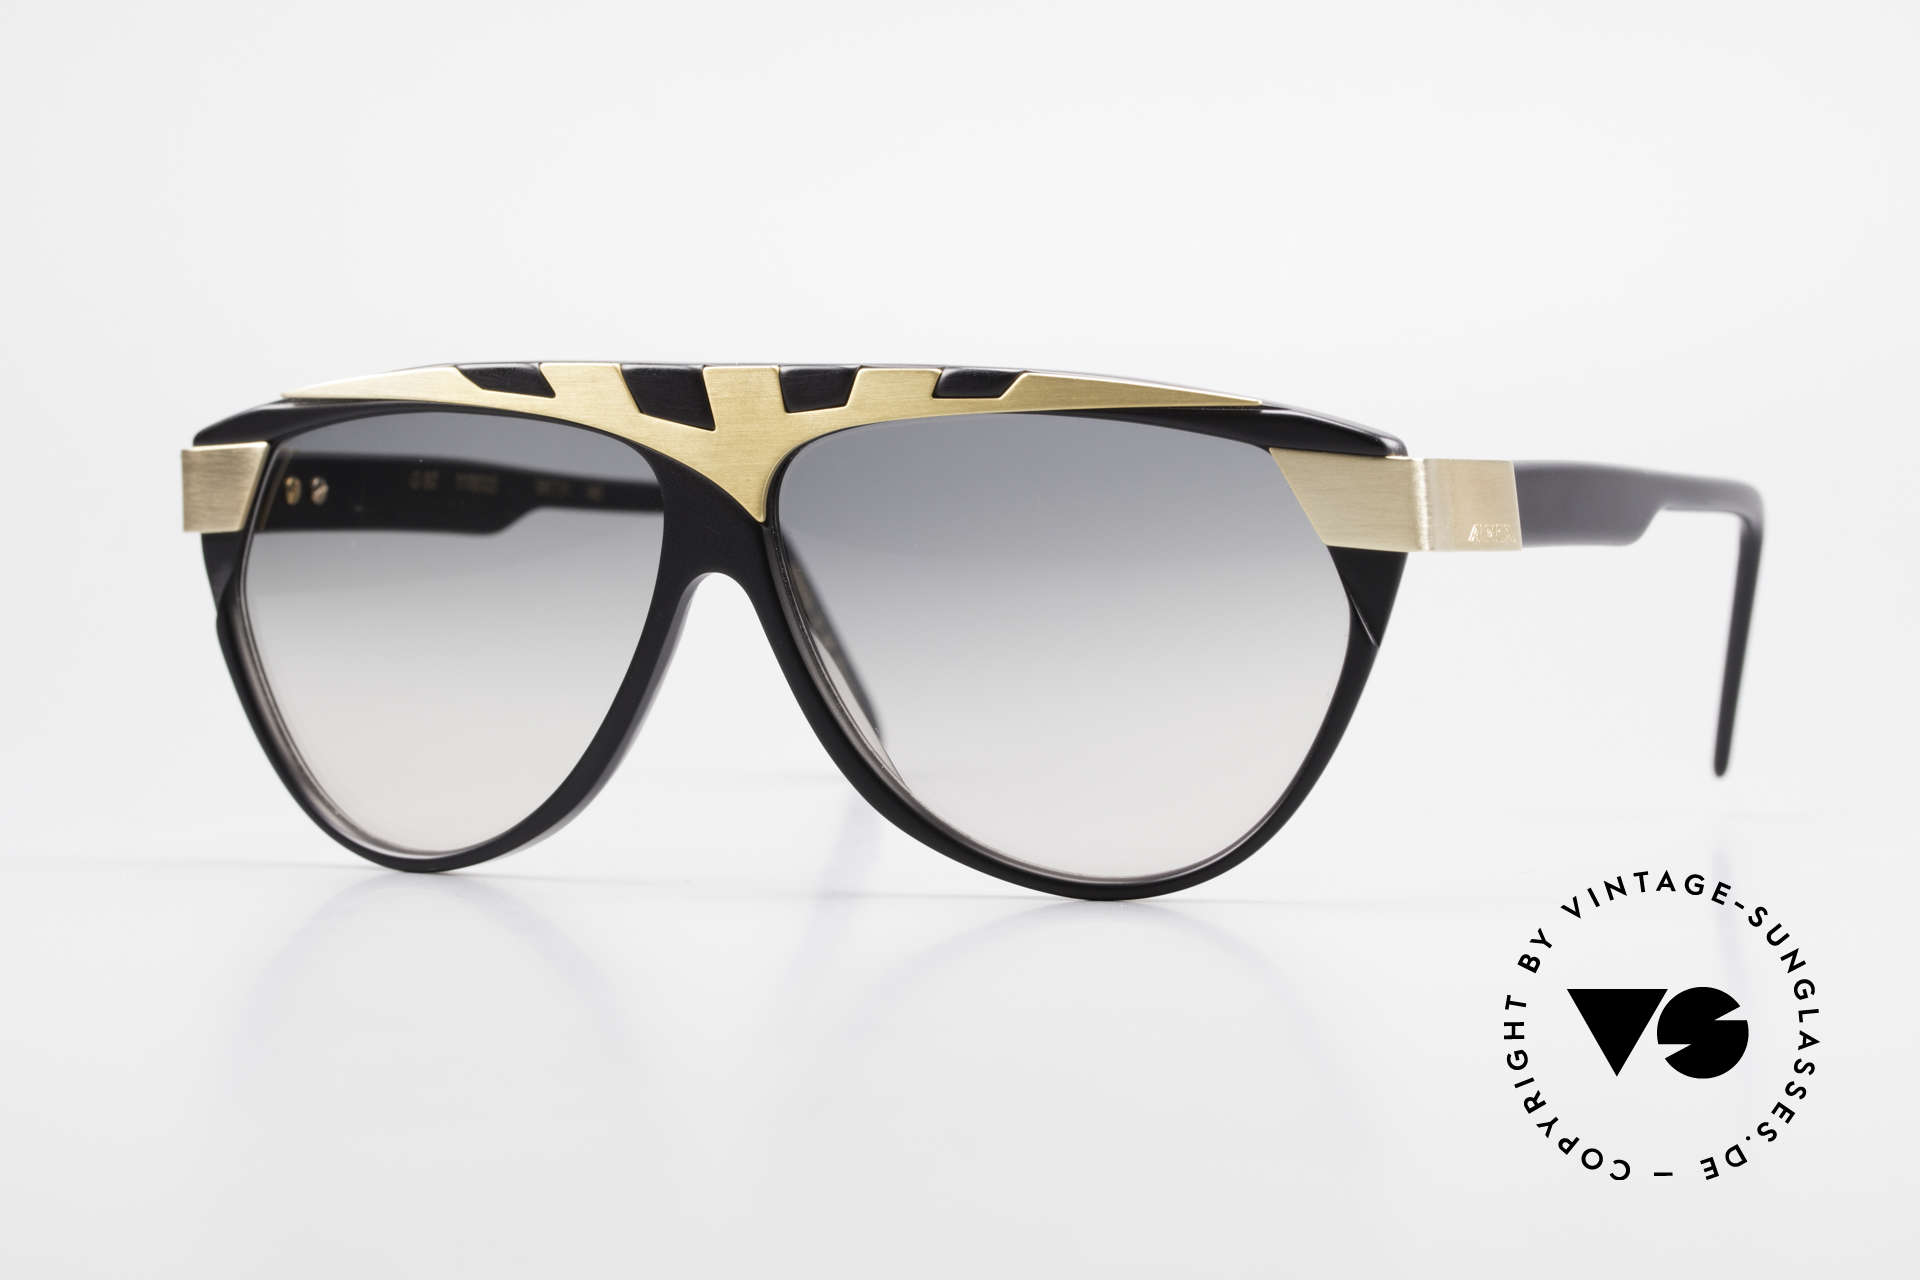 Alpina G80 Gold Plated 80's Sunglasses, vintage model from the 'Genesis Project' by Alpina, Made for Men and Women